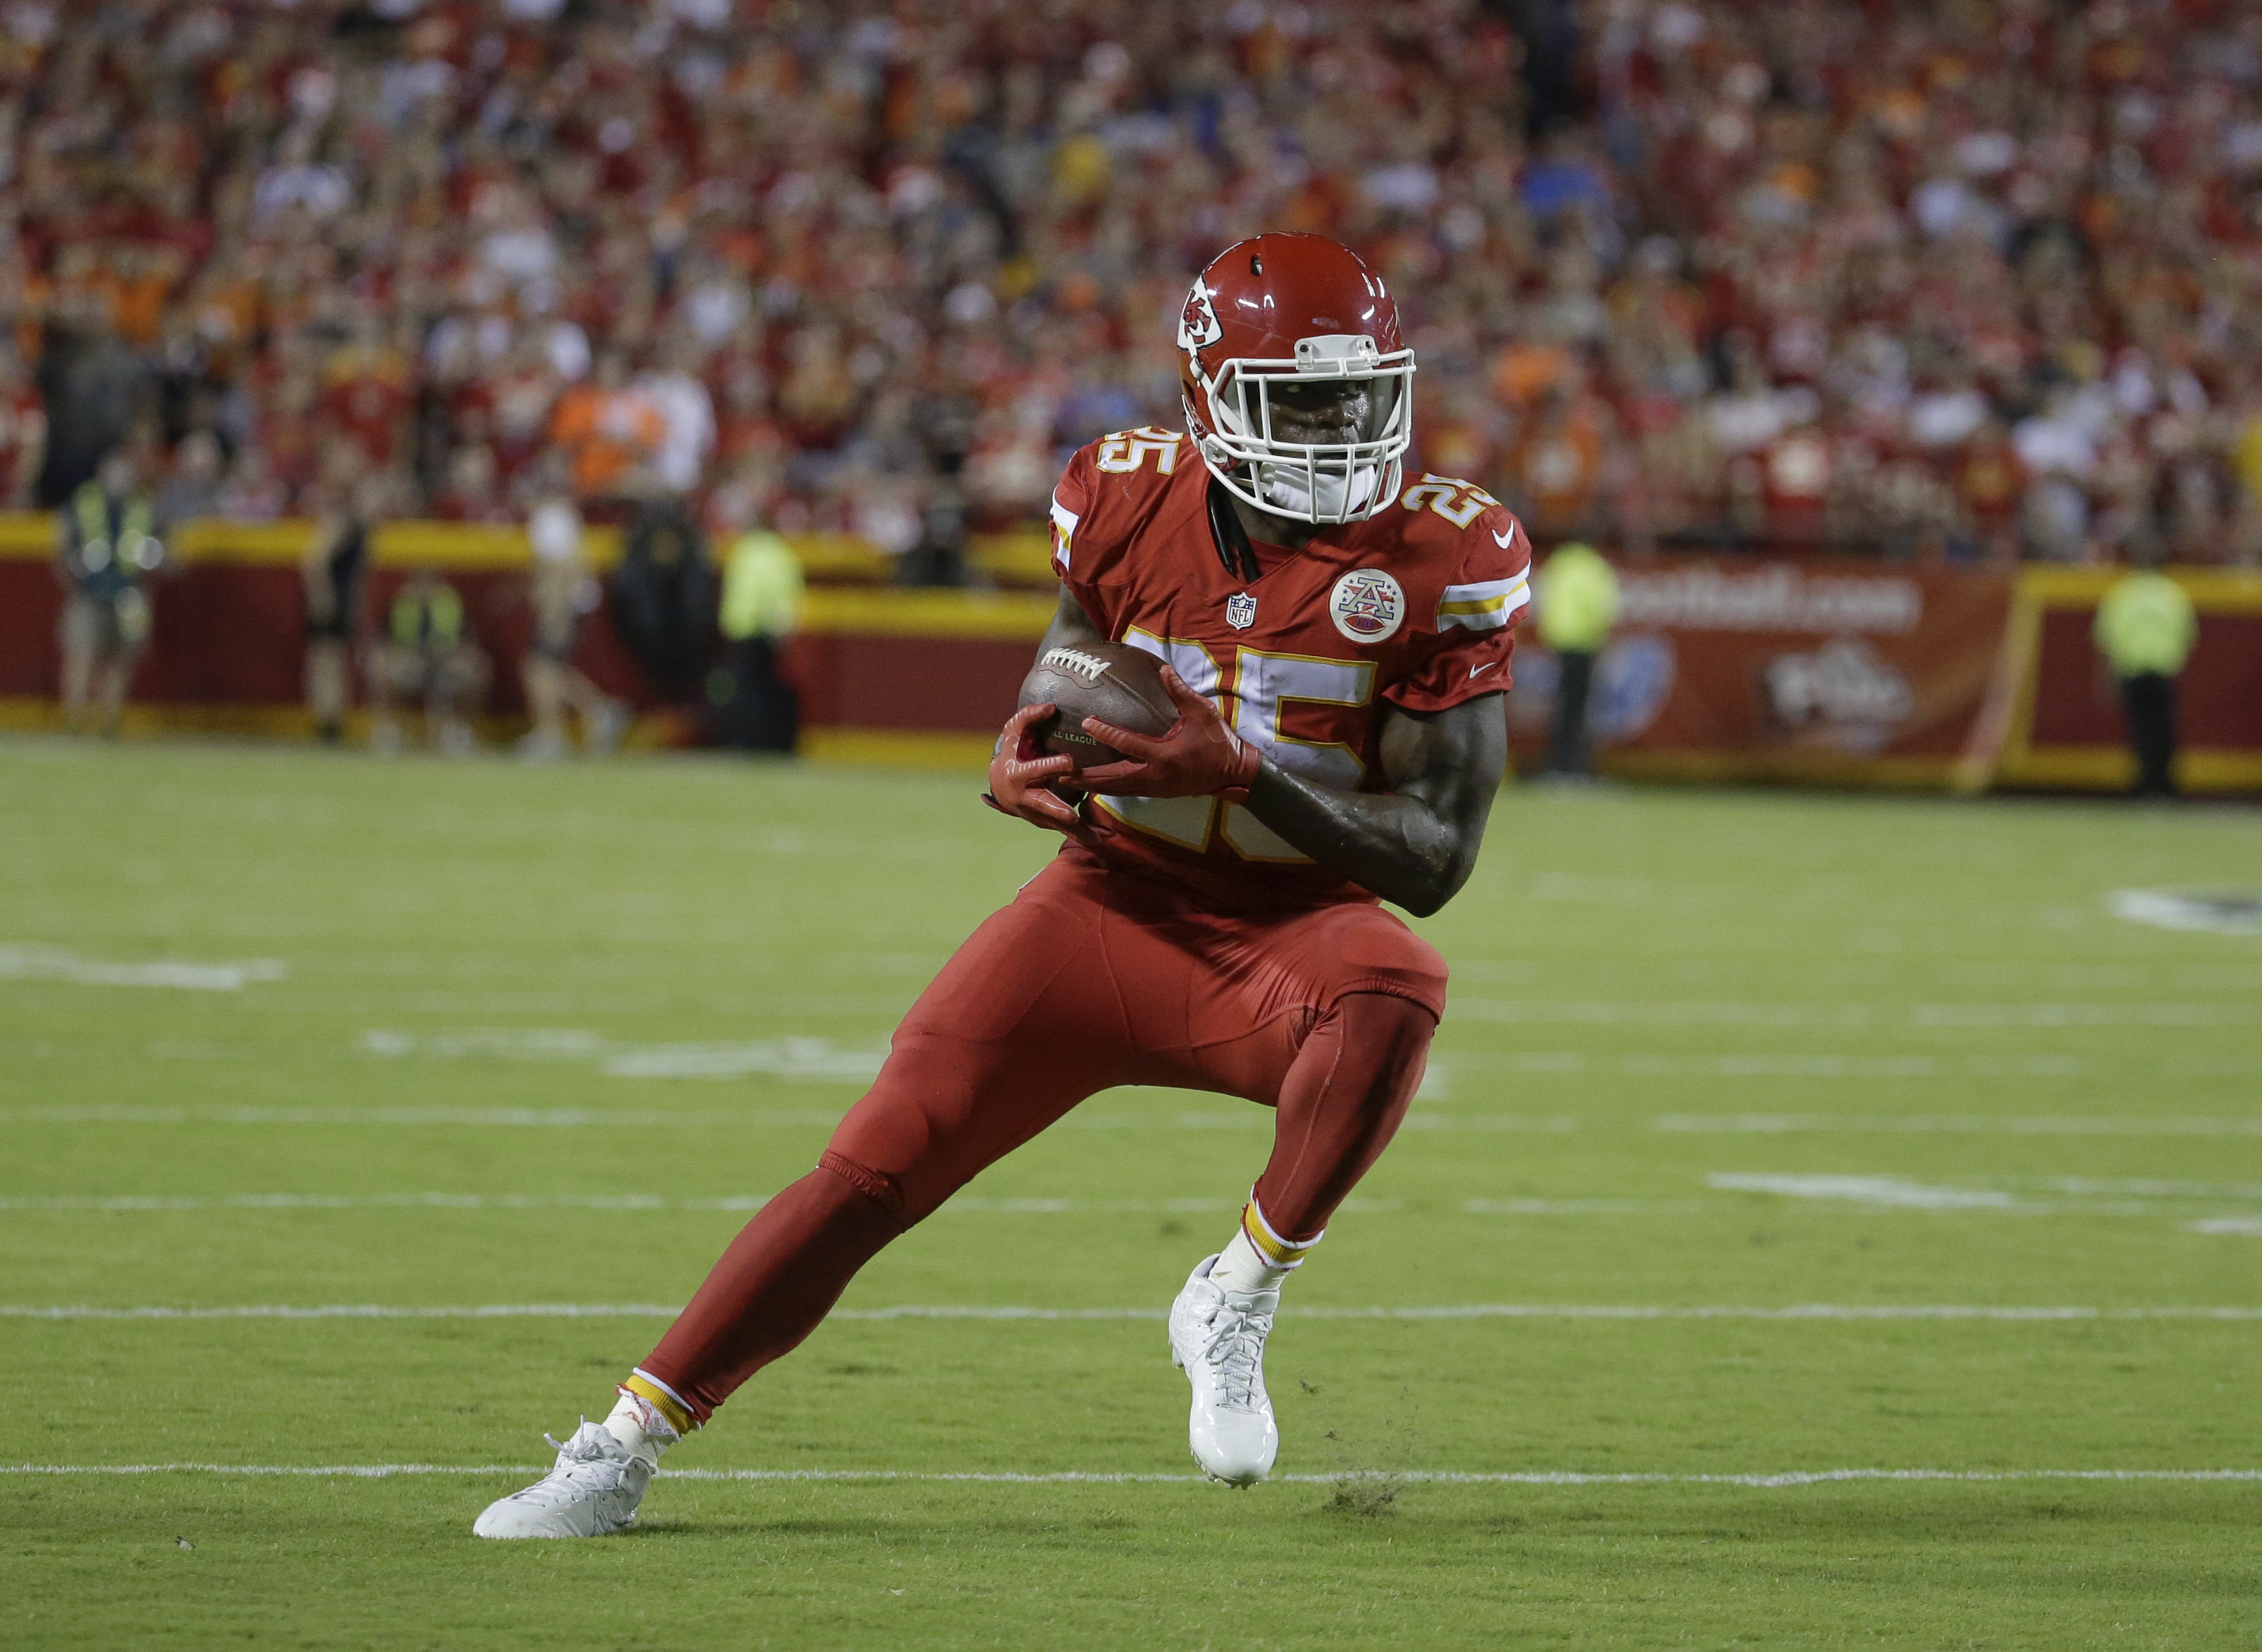 In this Thursday, Sept. 17, 2015 file photo, Kansas City Chiefs running back Jamaal Charles (25) runs with the ball during the first half of an NFL football game against the Denver Broncos in Kansas City, Mo. (AP Photo/Charlie Riedel, File)